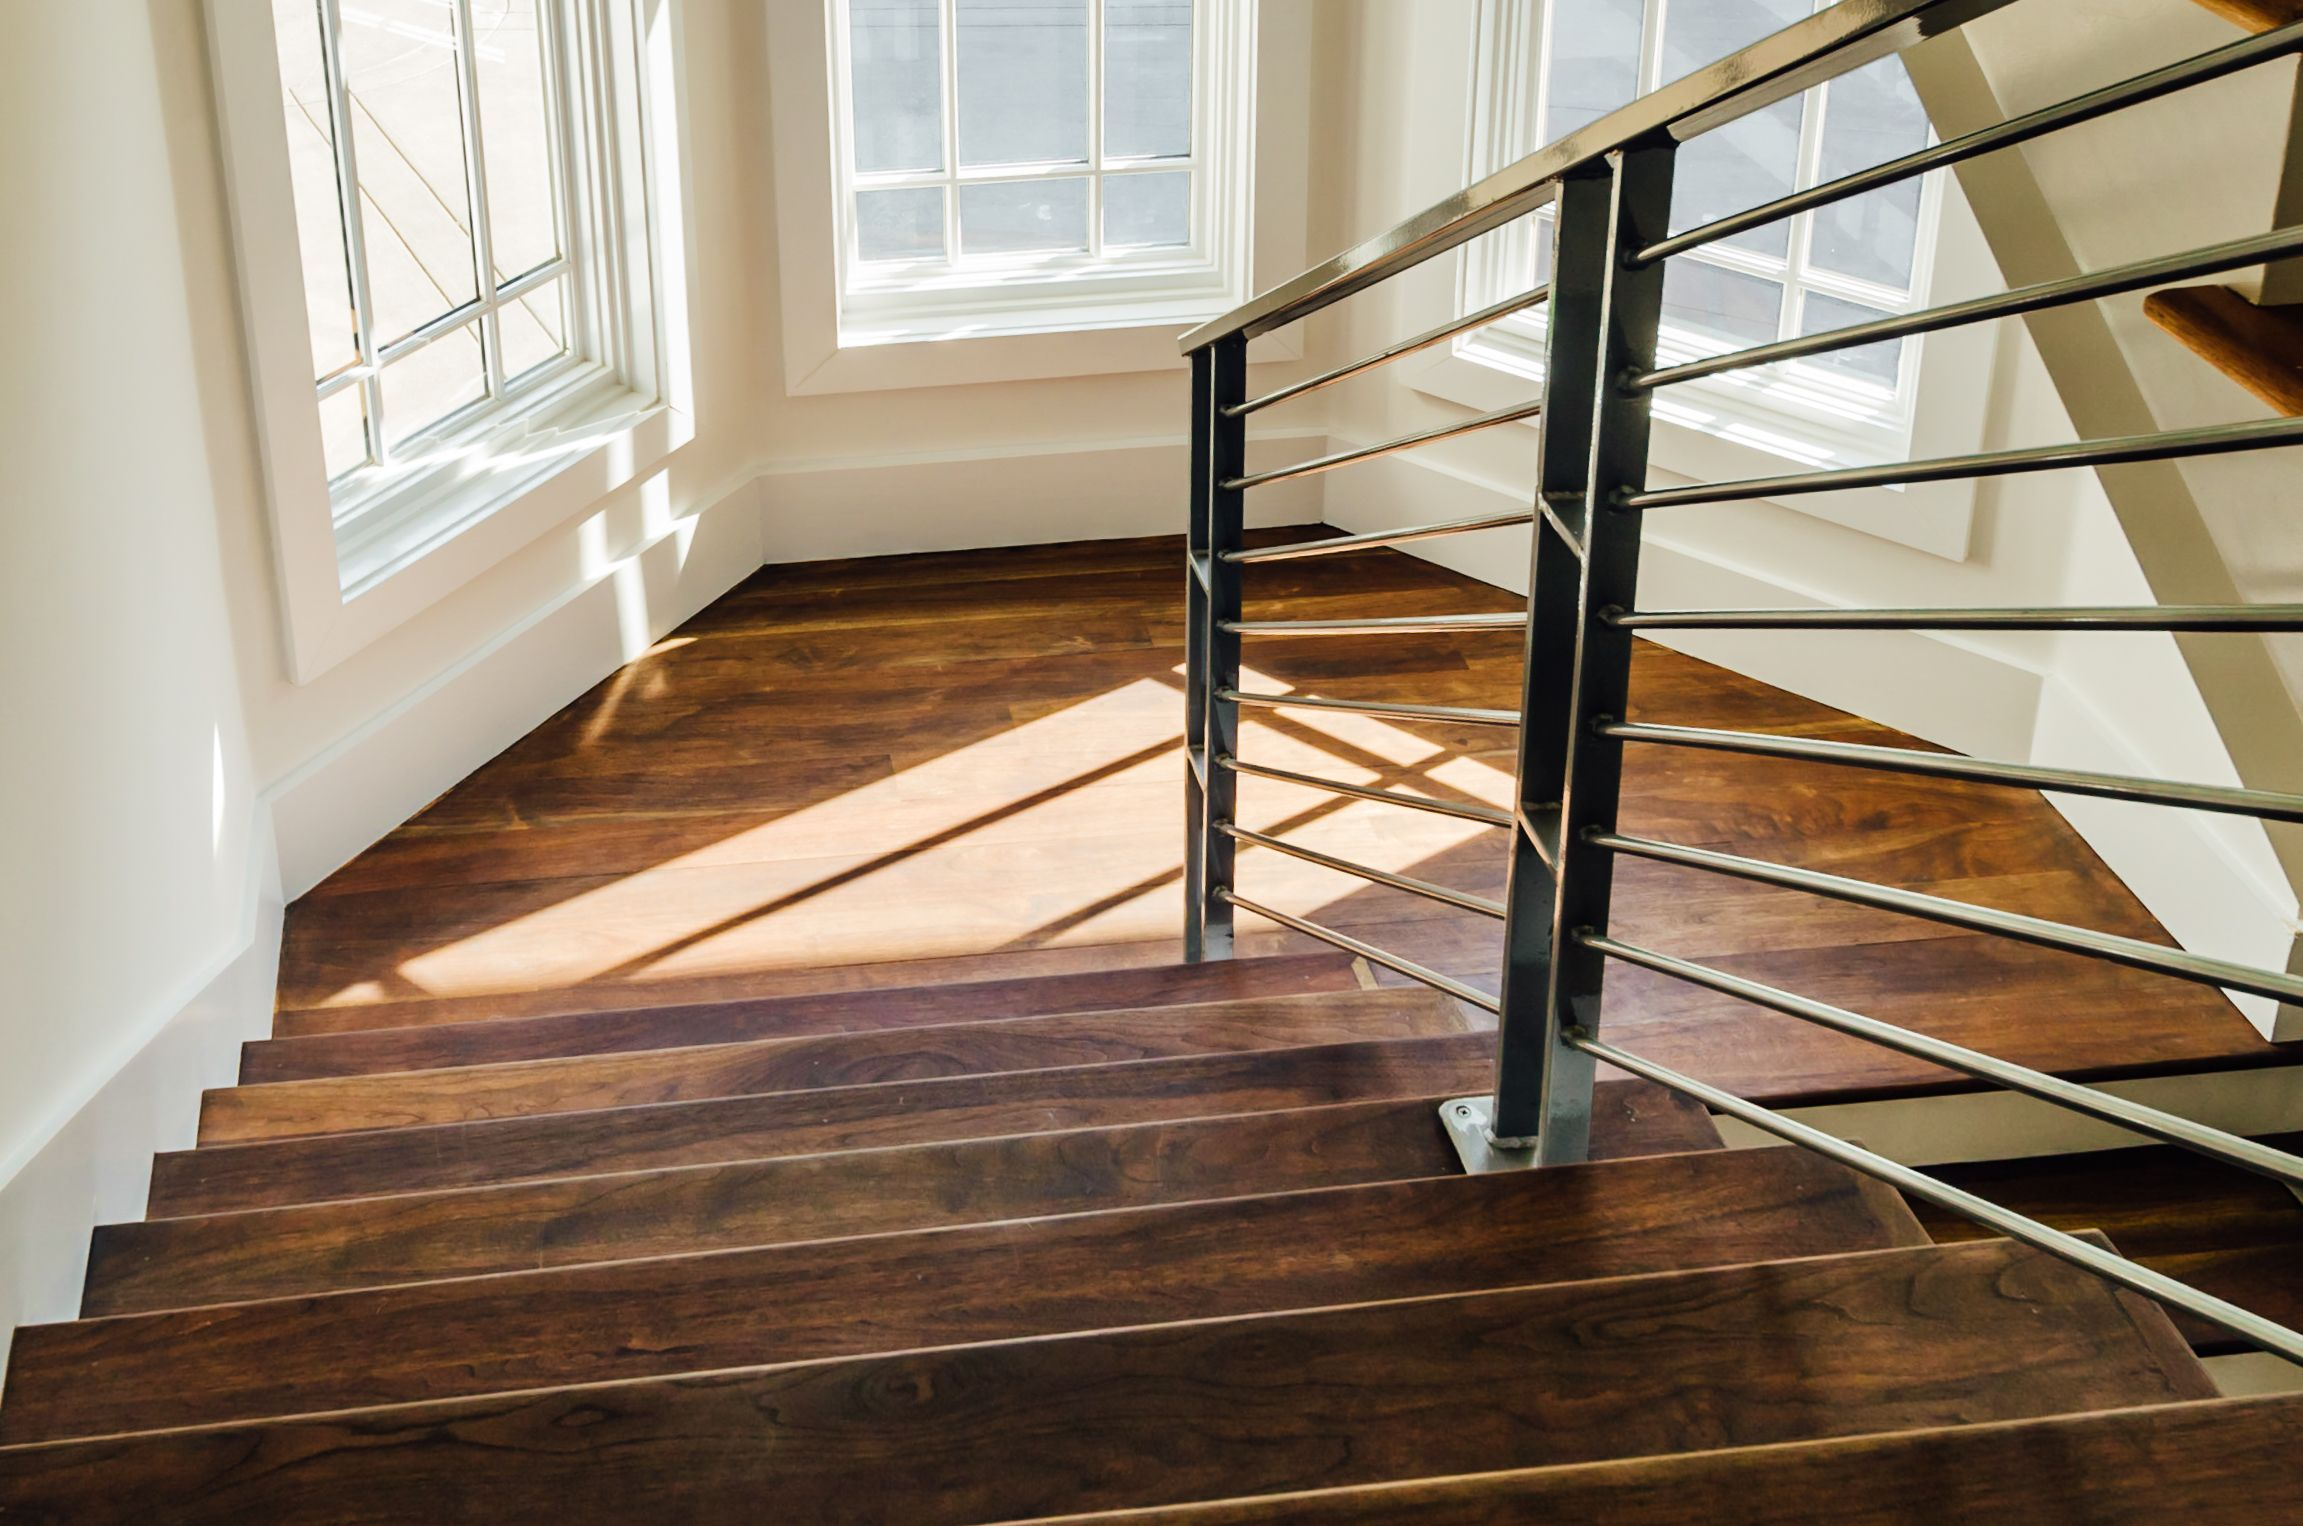 hardwood floors tn of options house kitchen flooring nashville and lovely svm inexpensive unique refinish good